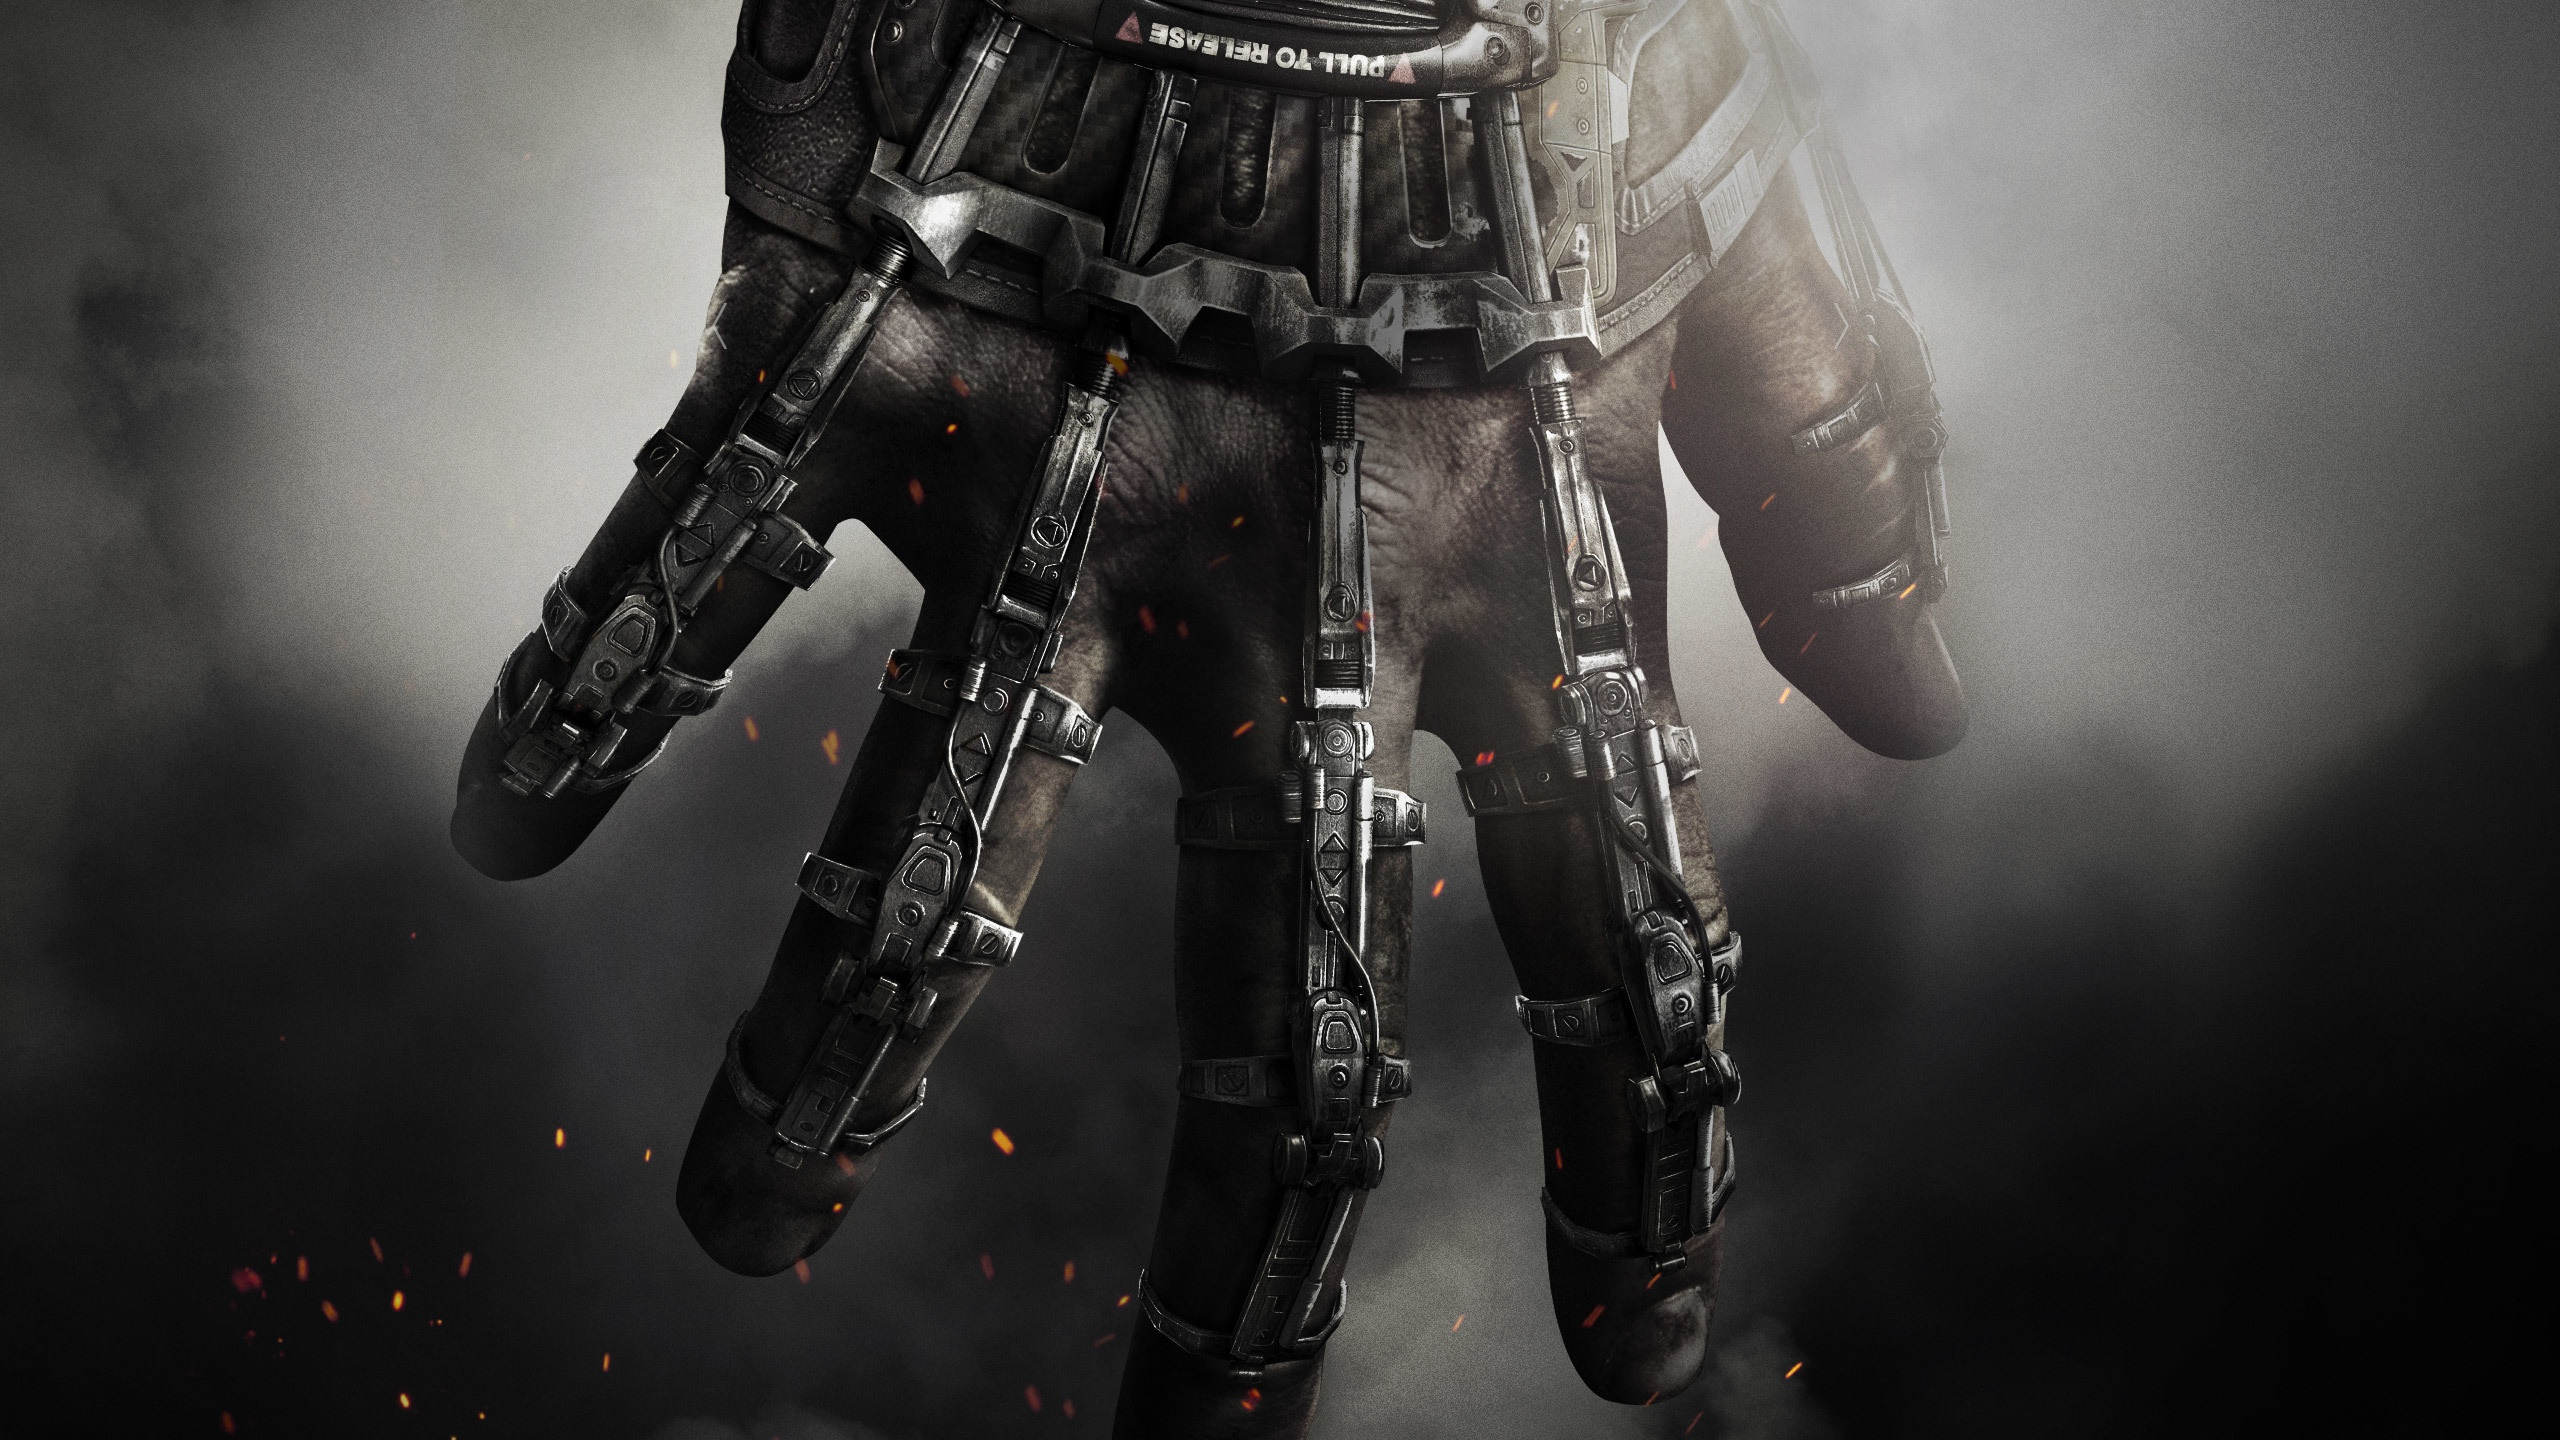 Call Of Duty Advanced Warfare 2 Wallpapers In Jpg Format For Free